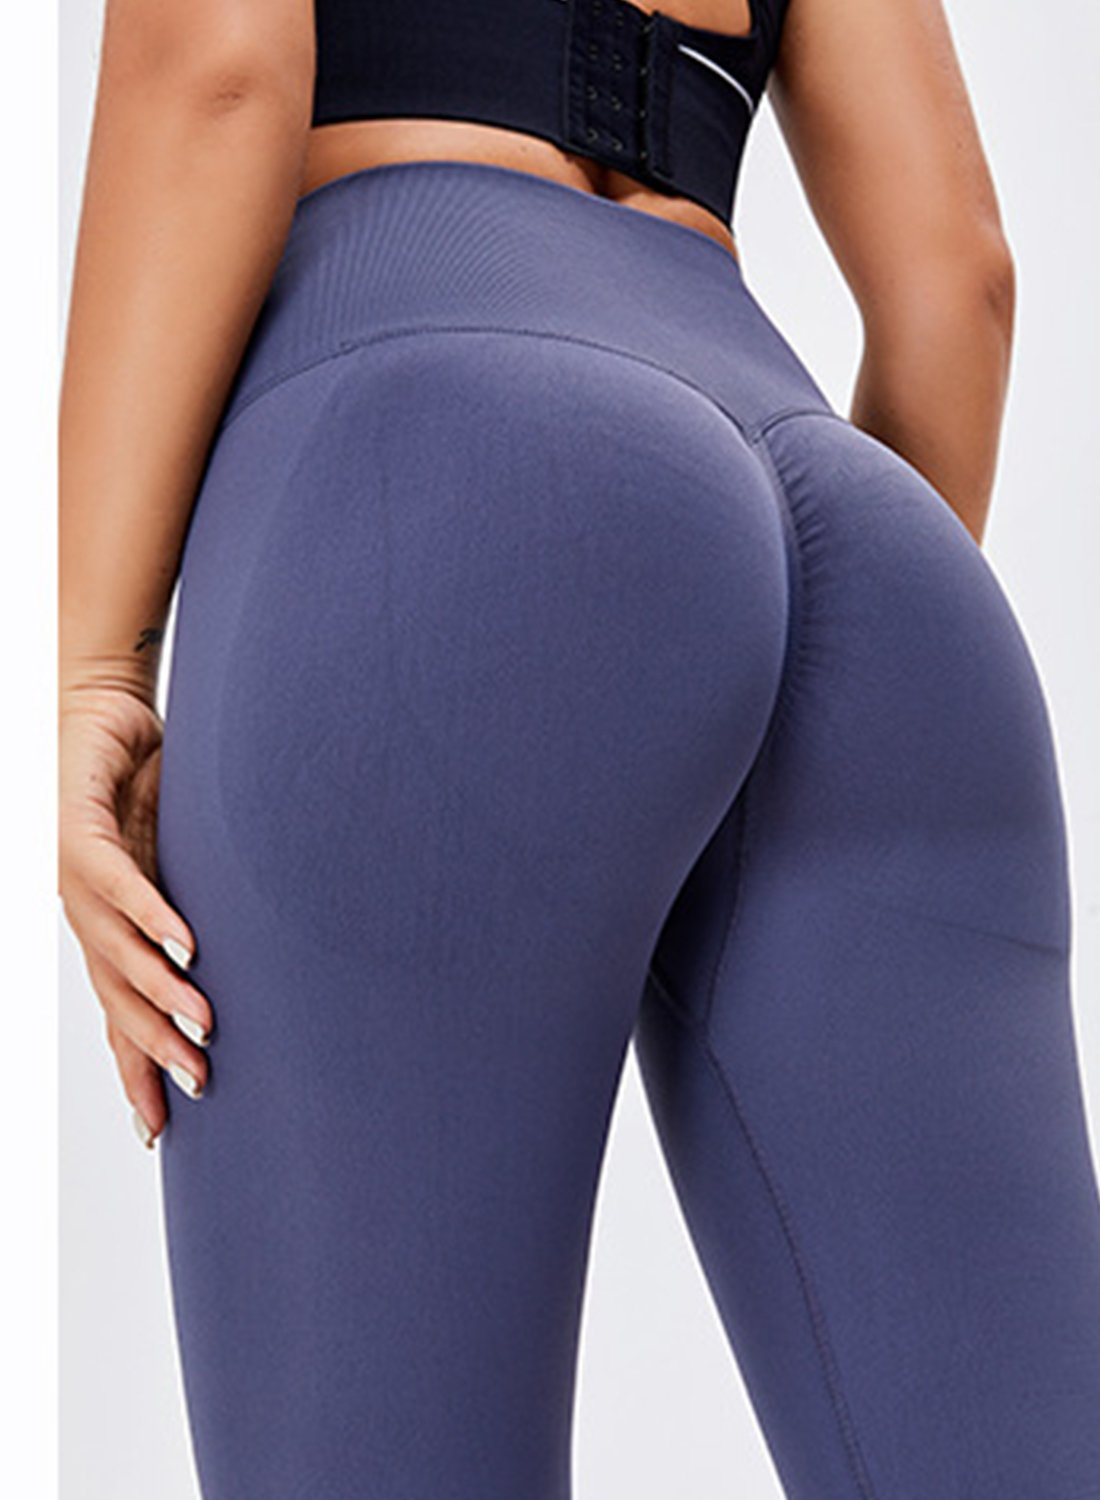 High Waist Body Shaping Running Sports Leggings-JustFittoo